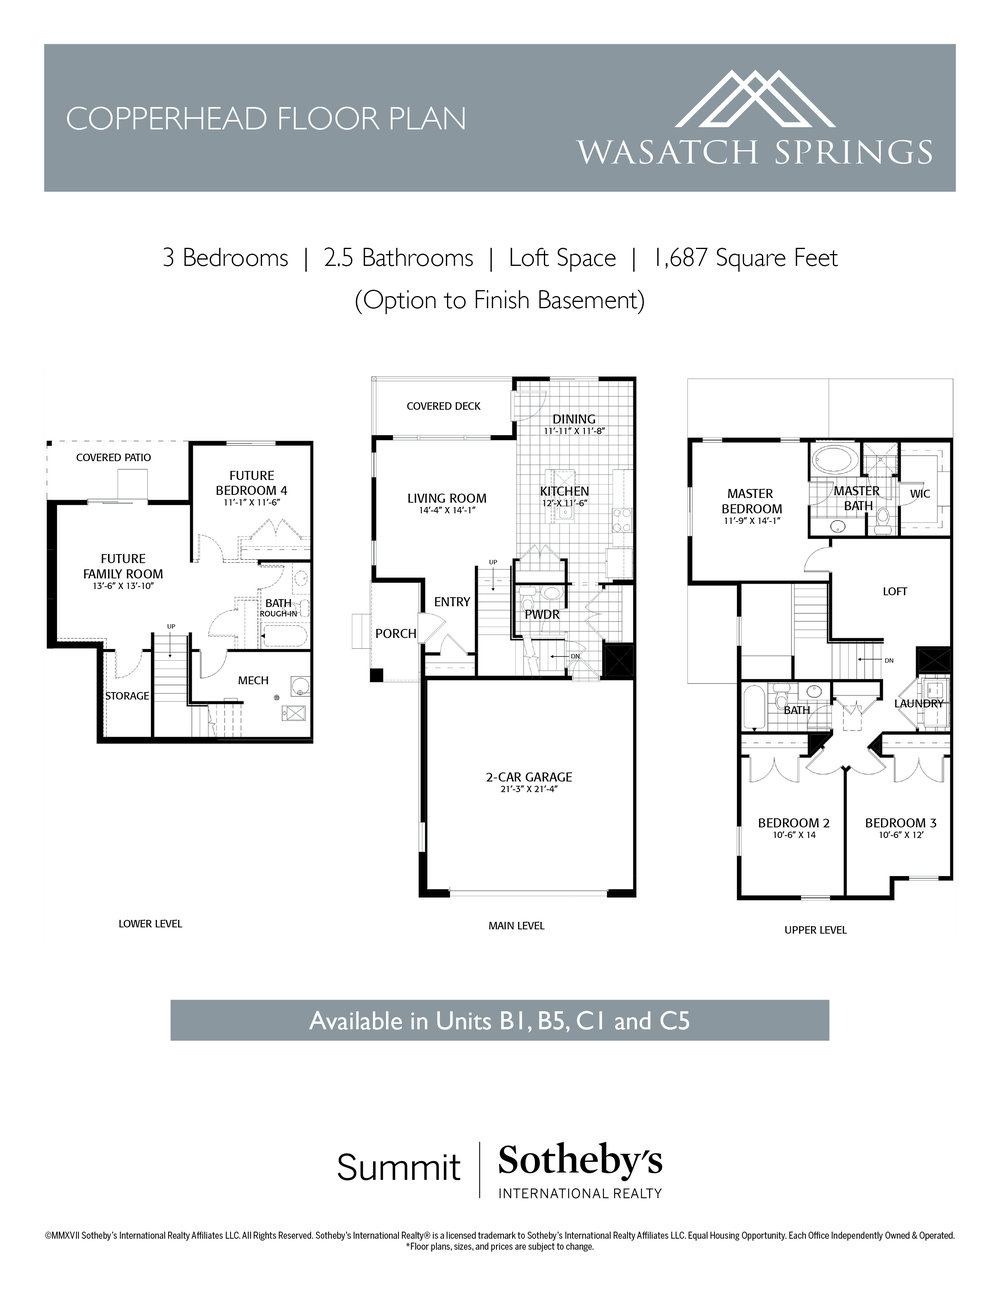 Wasatch Springs Inserts - Copperhead Floorplan.jpg